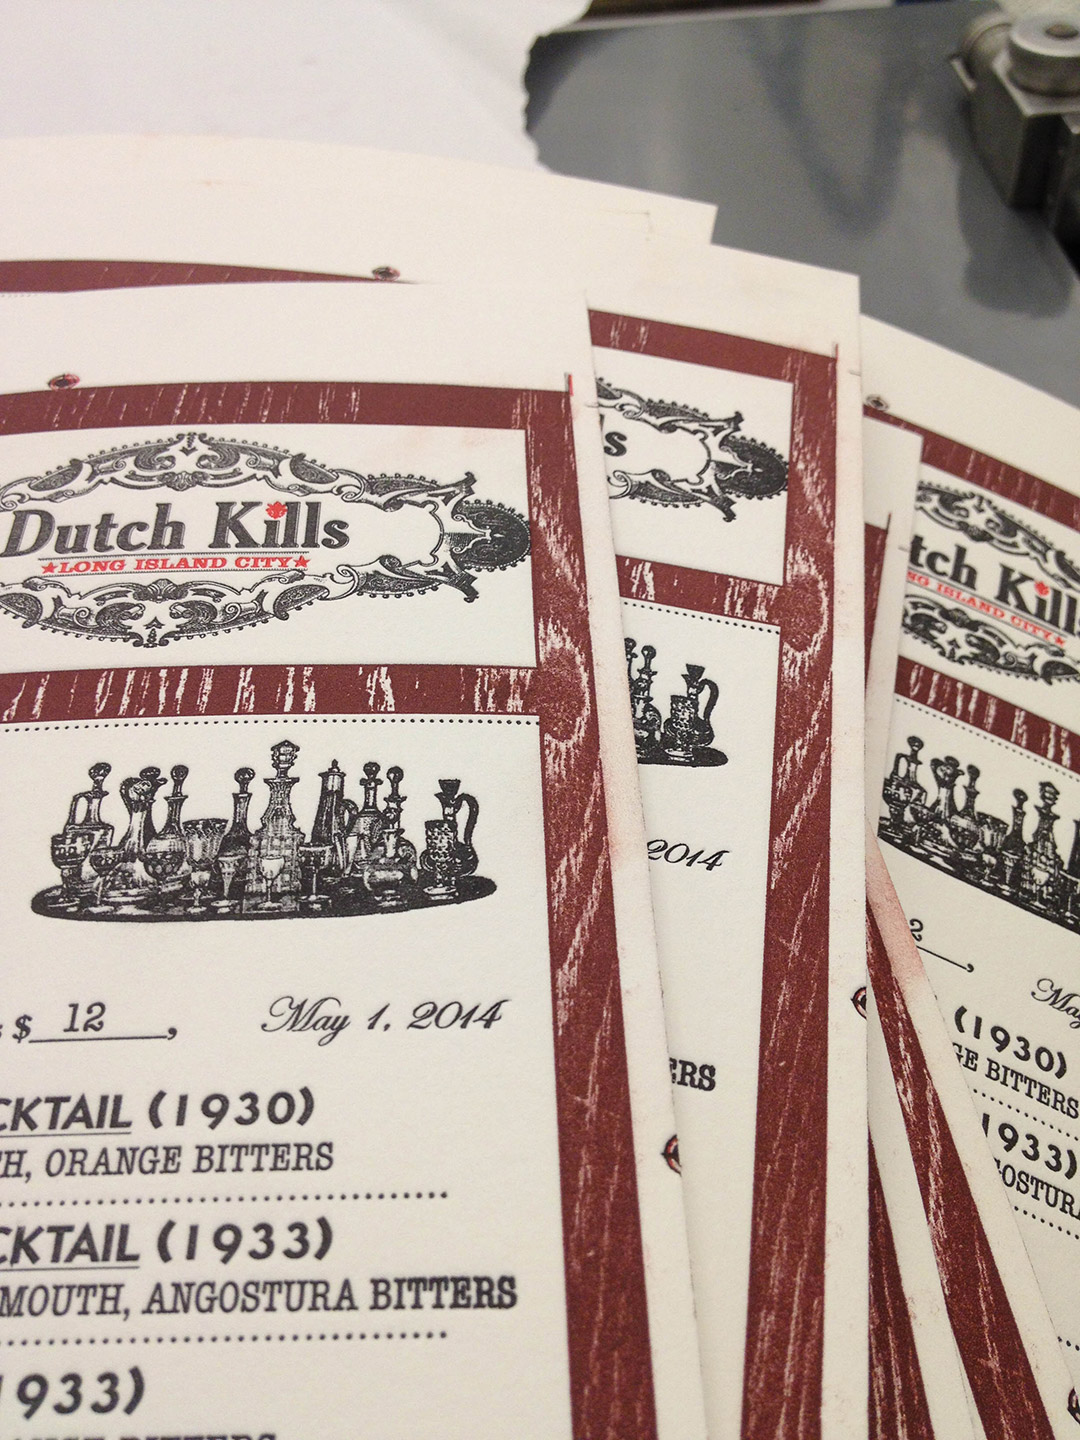 Dutch Kills 5th anniversary letterpress printed menus